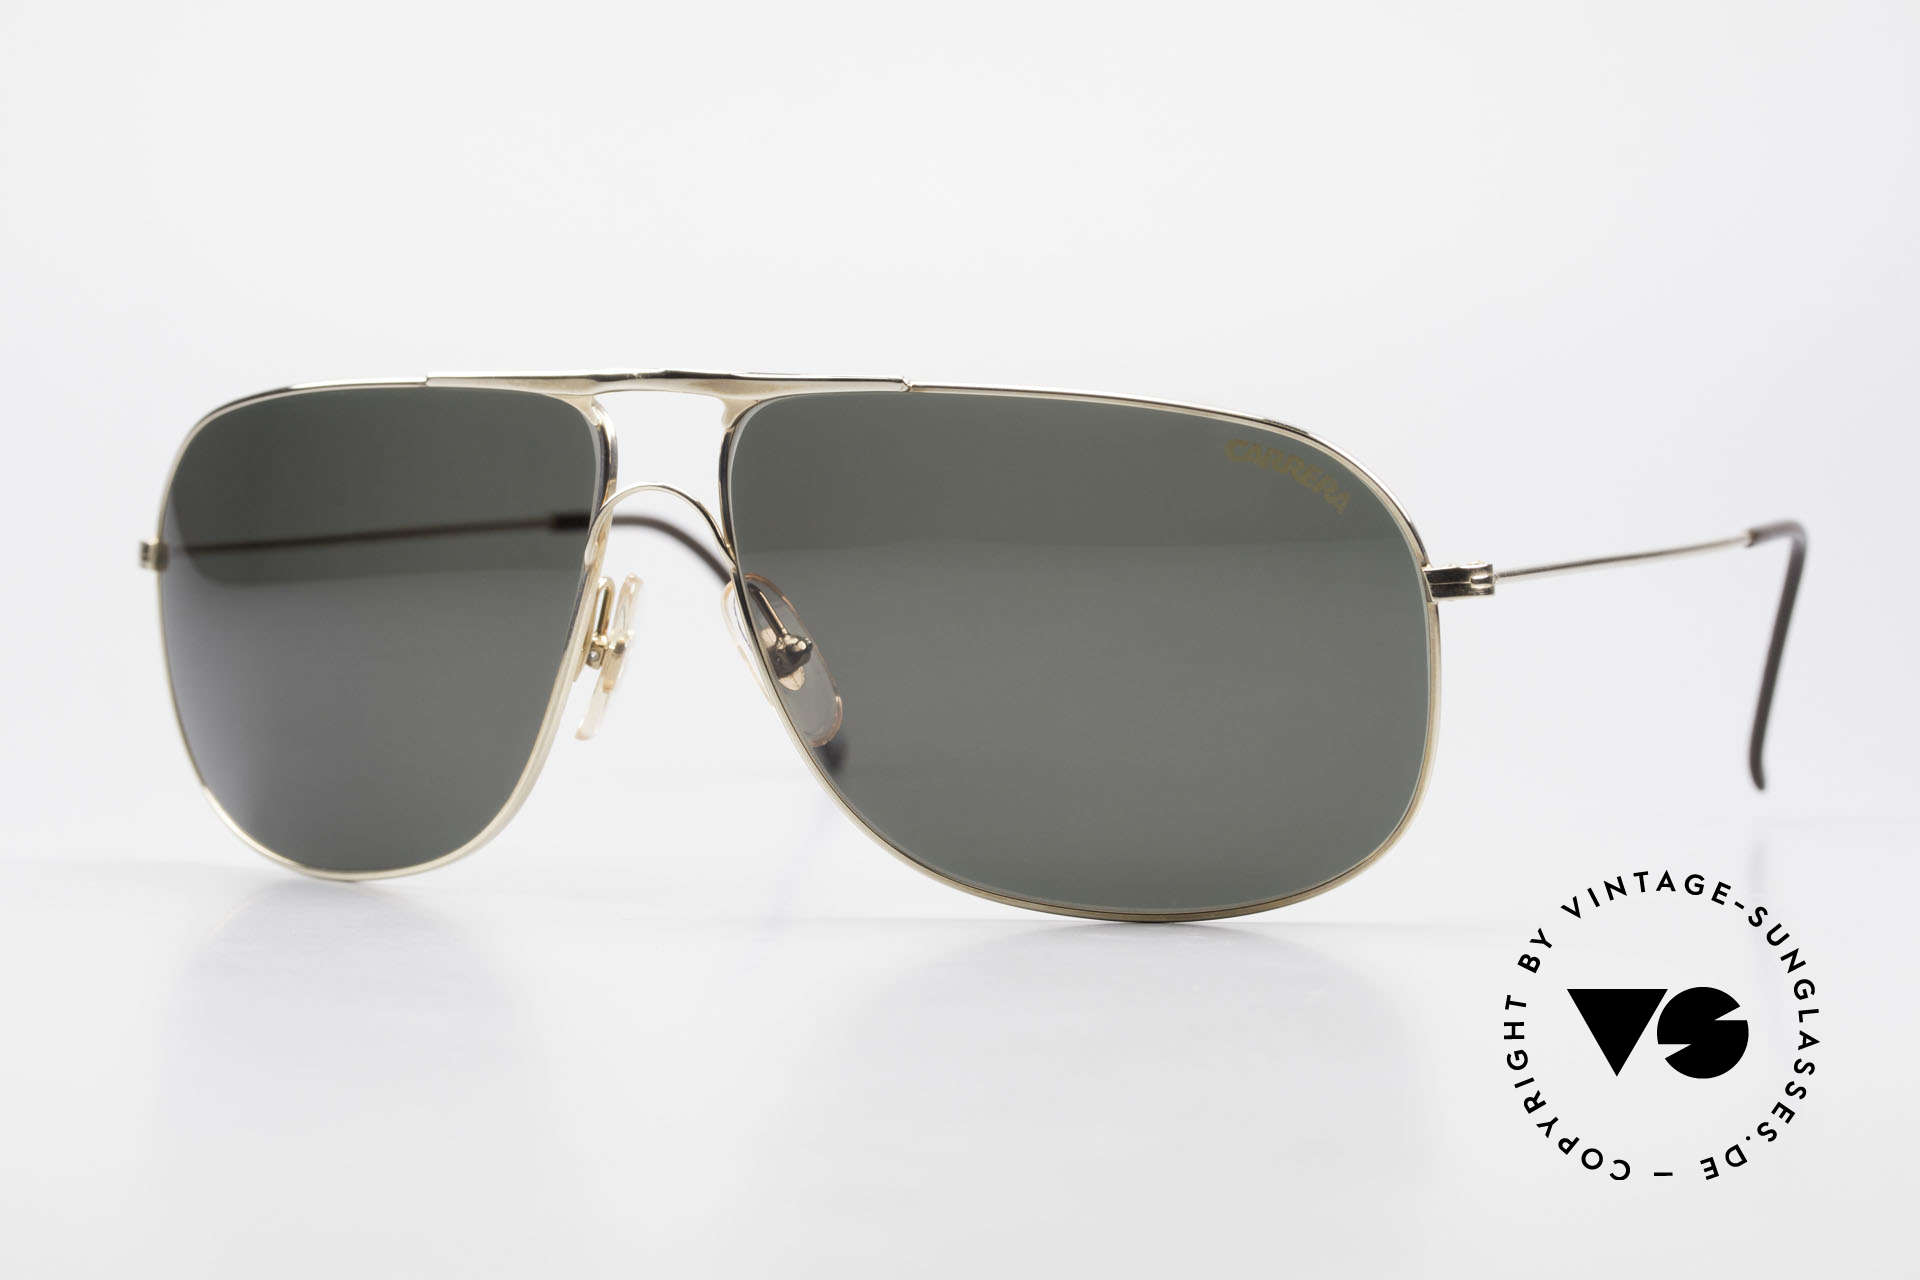 Carrera 5422 Shades With 3 Sets of Lenses, Carrera shades of the Carrera Collection from 1989/90, Made for Men